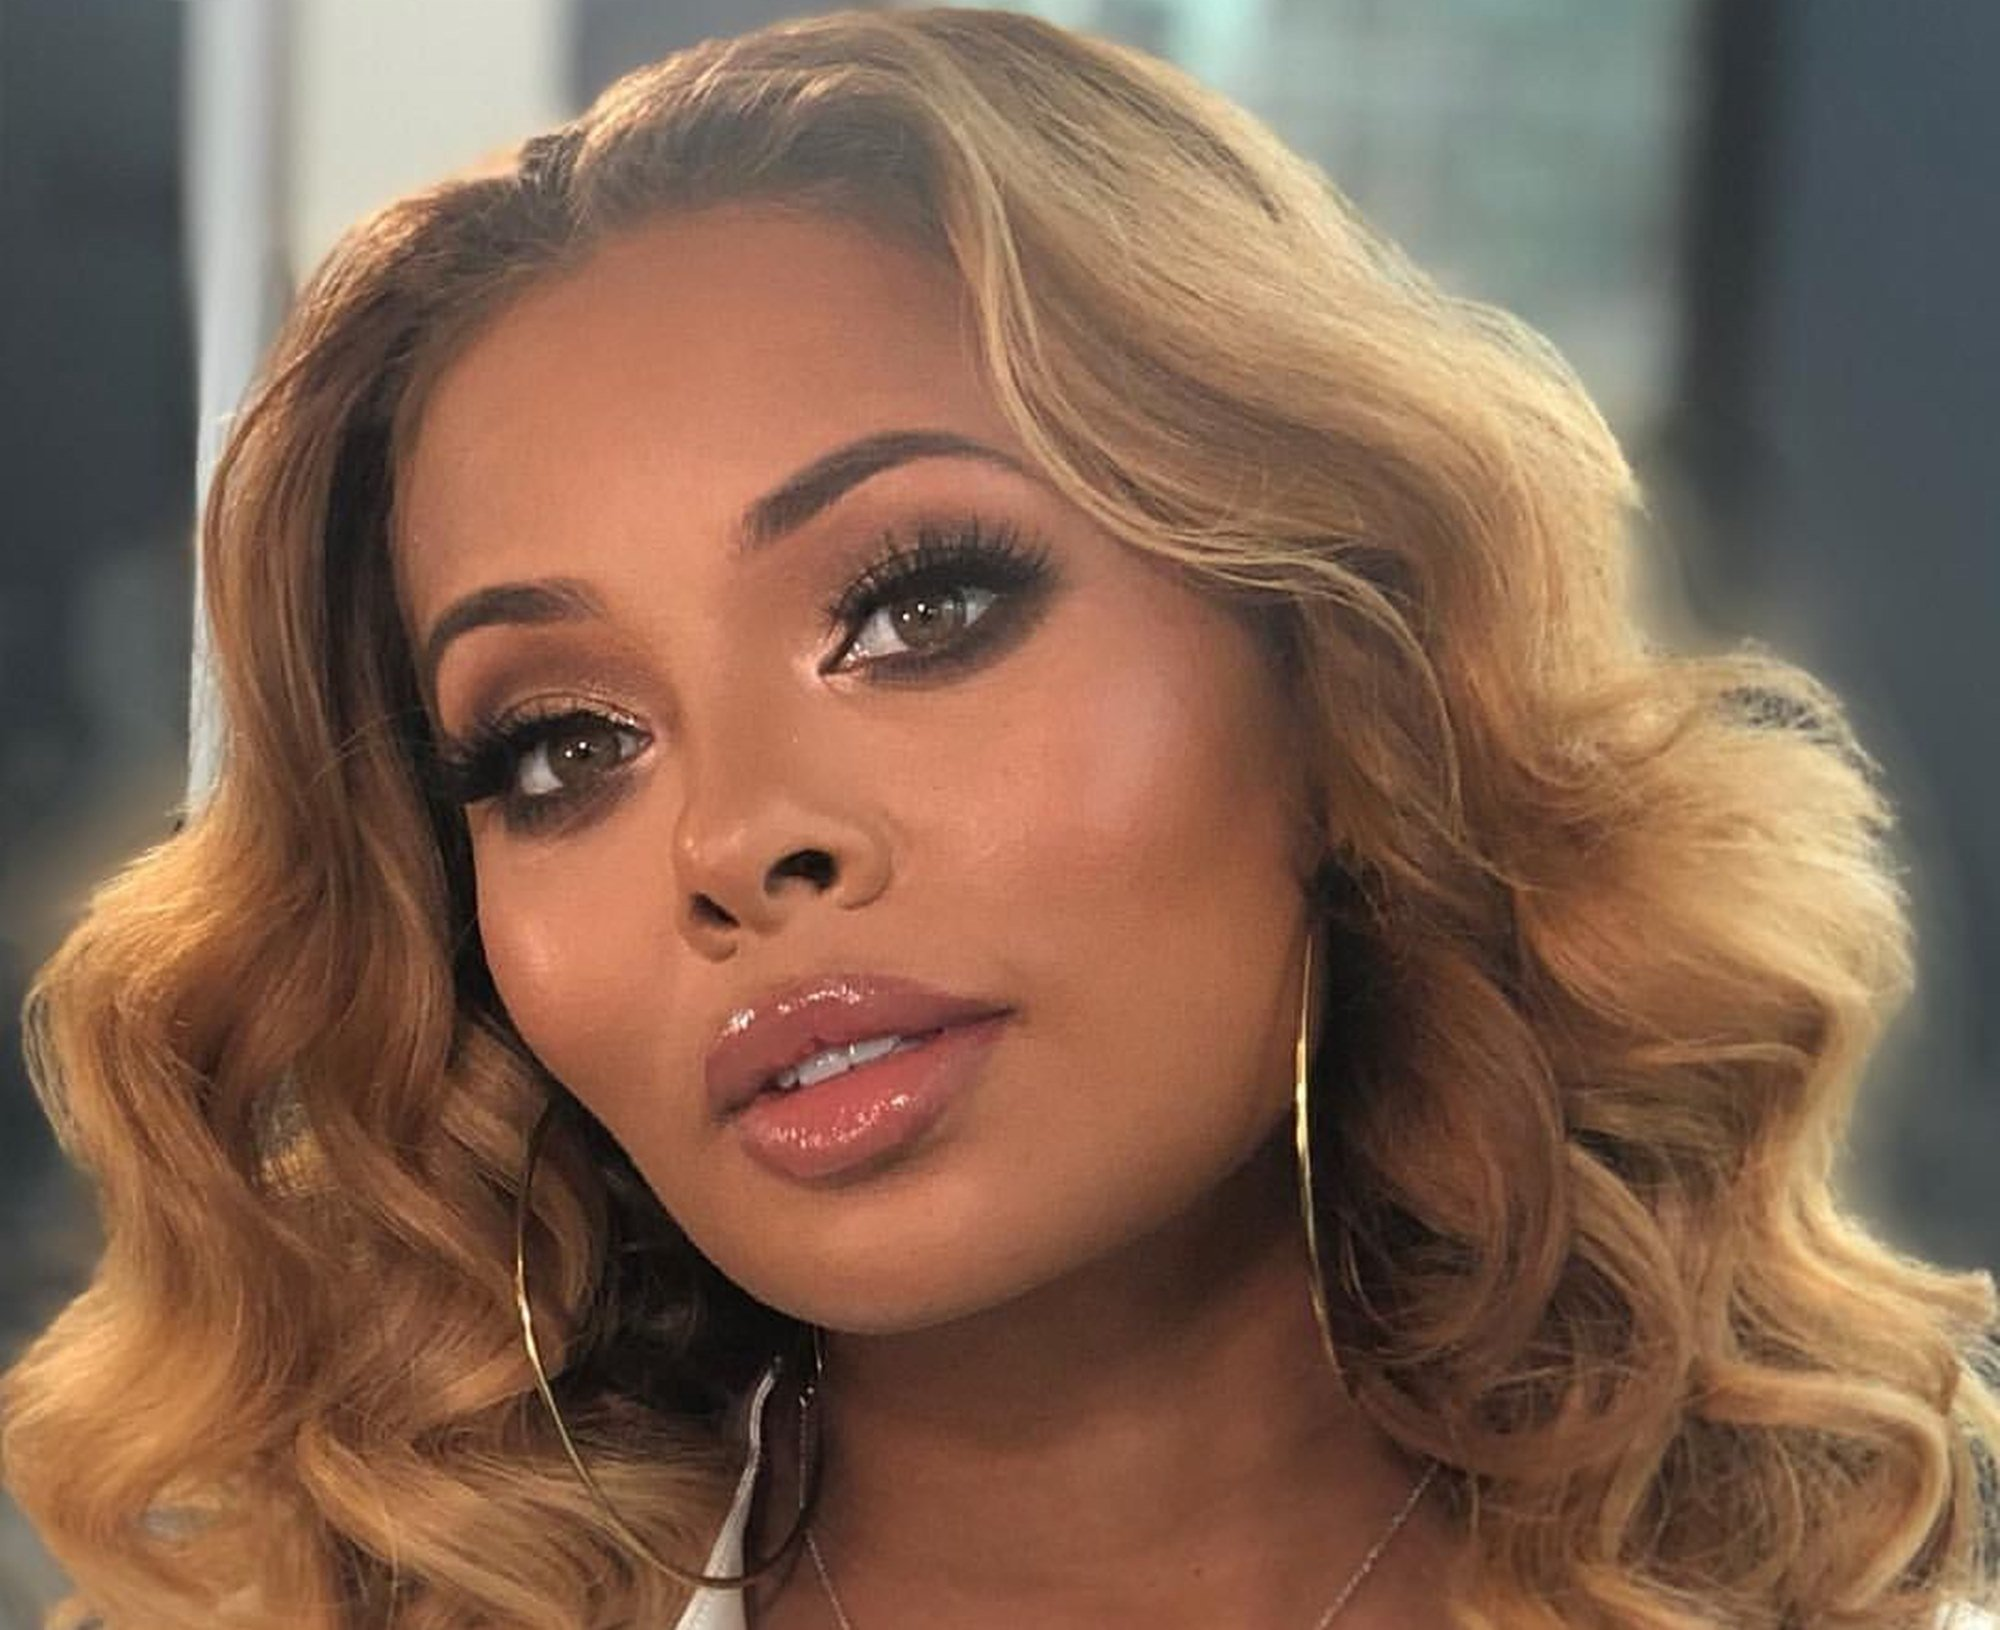 Eva Marcille's Video Featuring Marley Rae Has Fans In Awe – Check Out The Clip She Posted